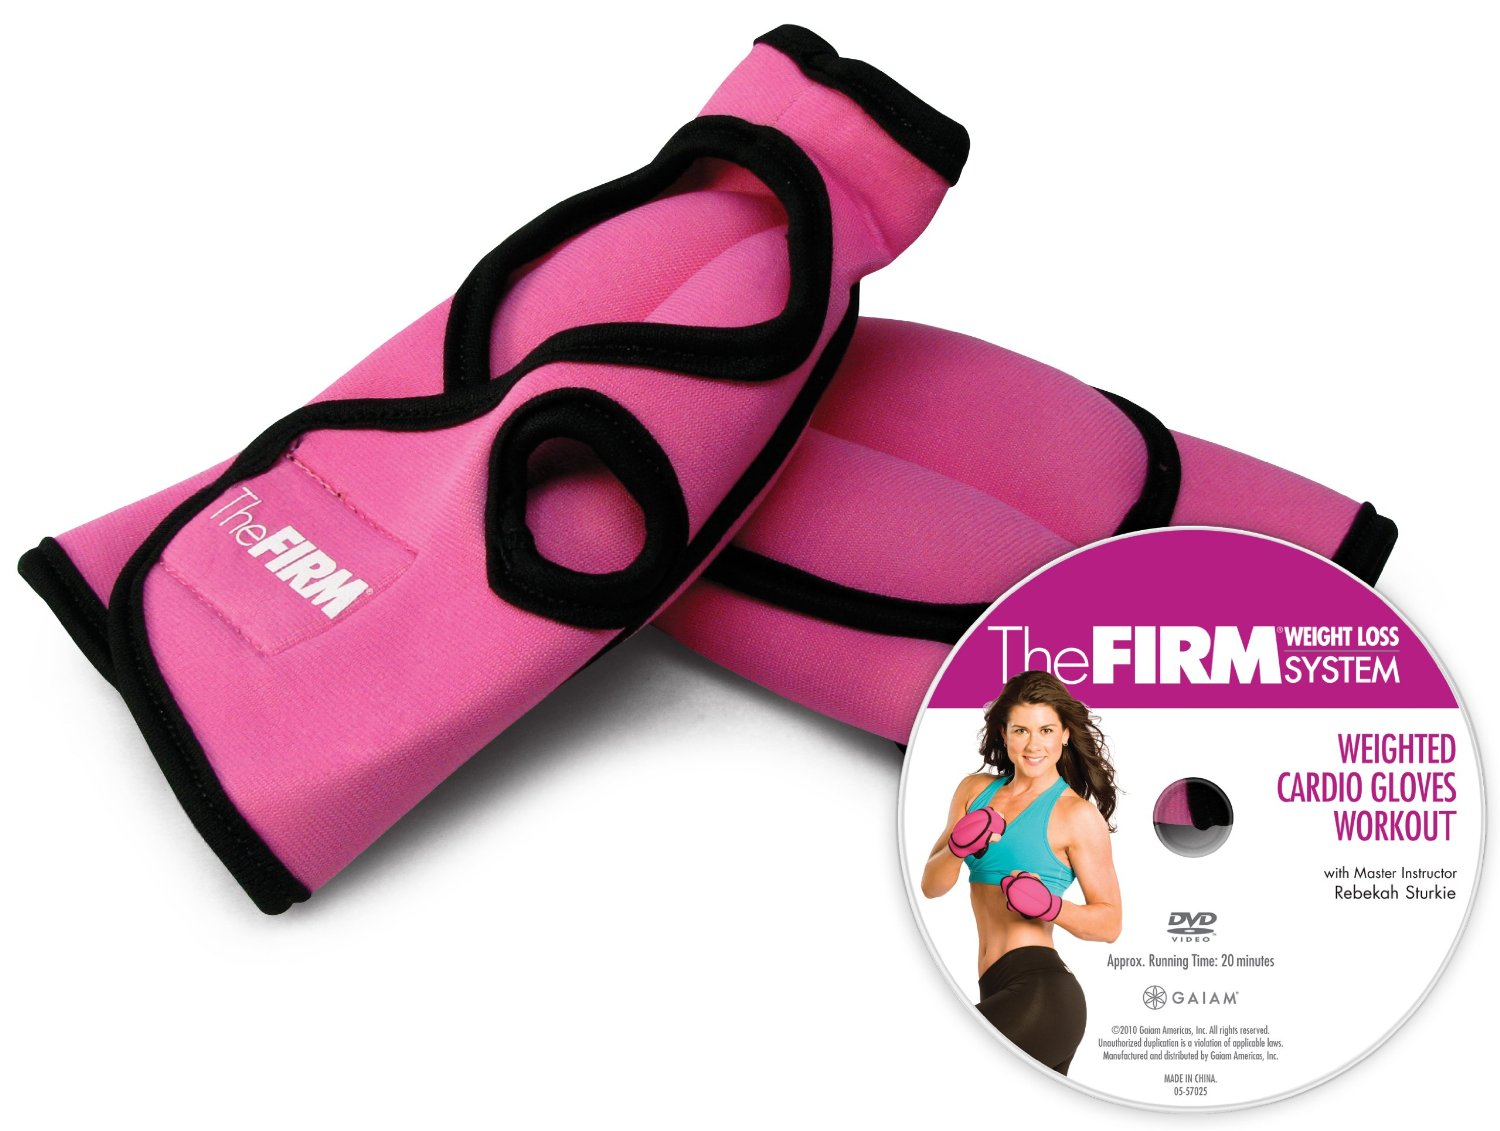 The Firm Weighted Cardio Gloves Kit with DVD